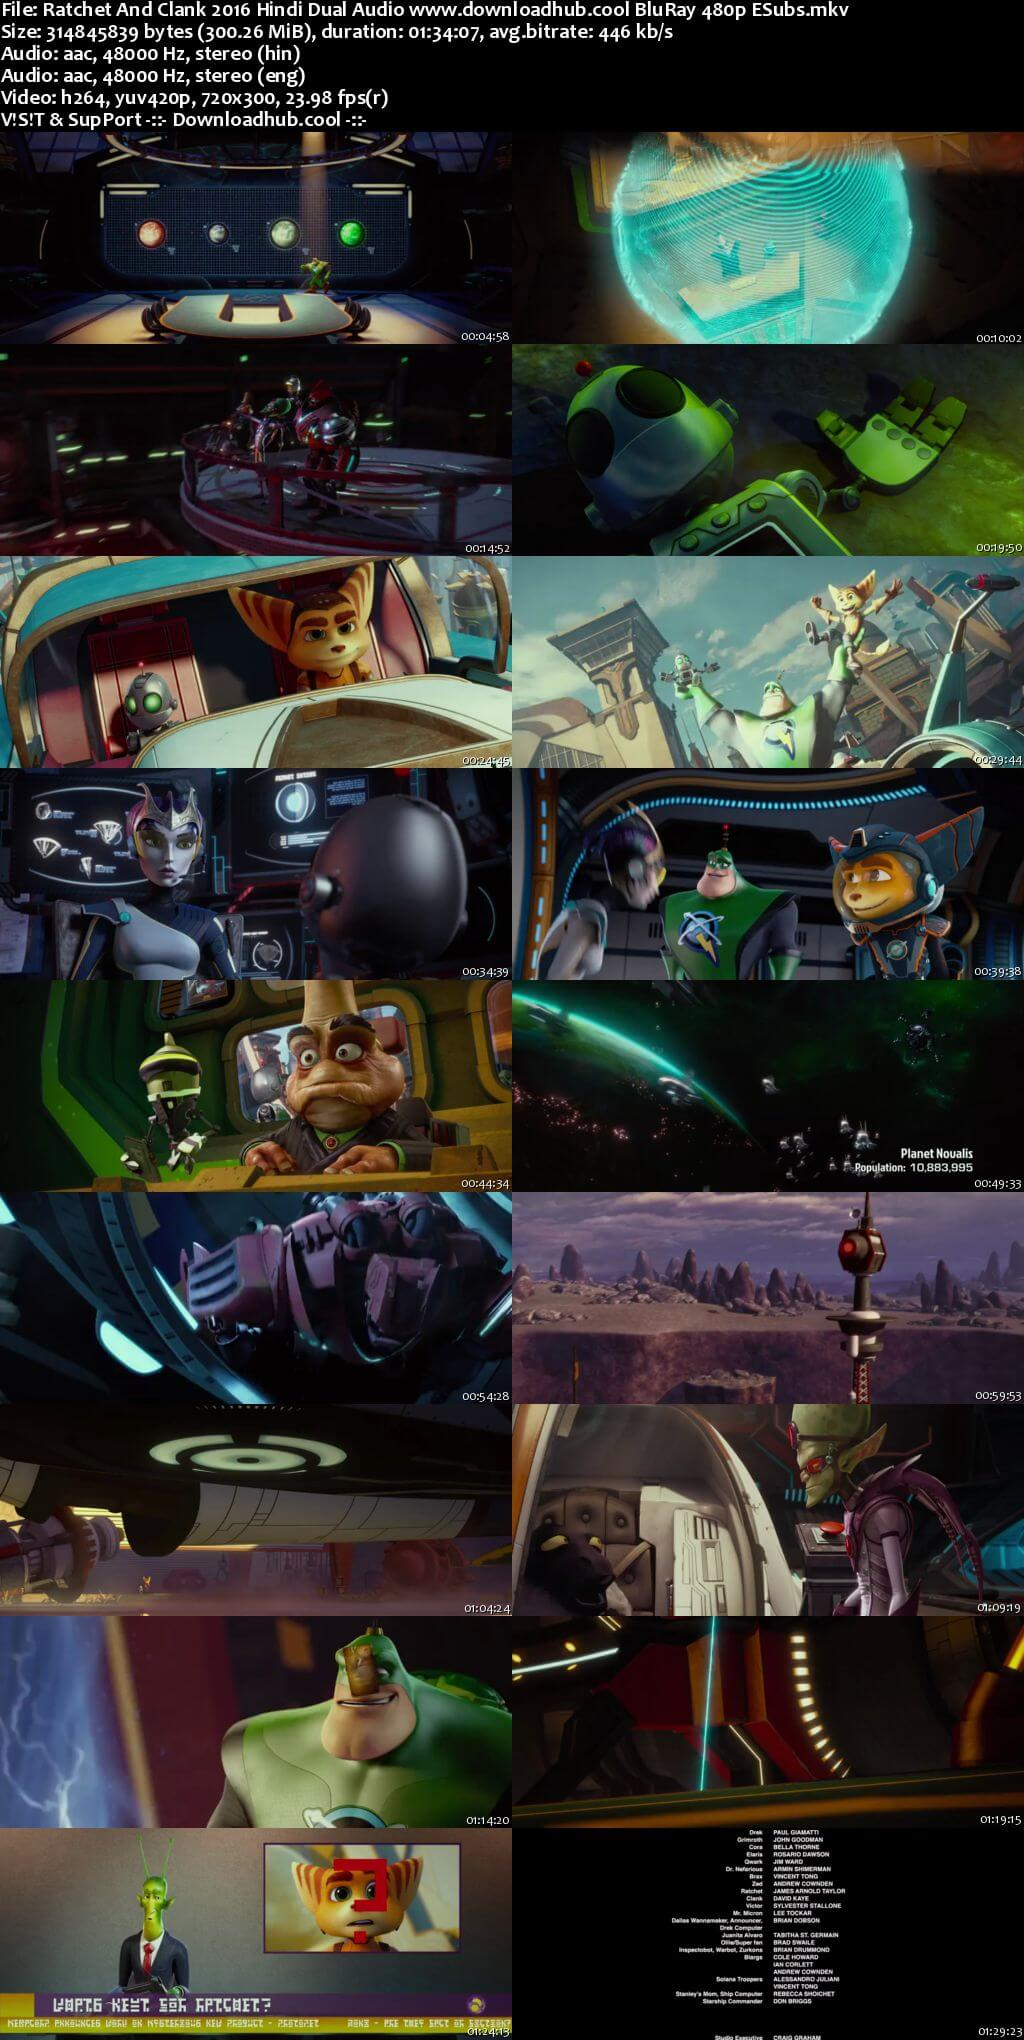 Ratchet And Clank 2016 Hindi Dual Audio 300MB BluRay 480p ESubs